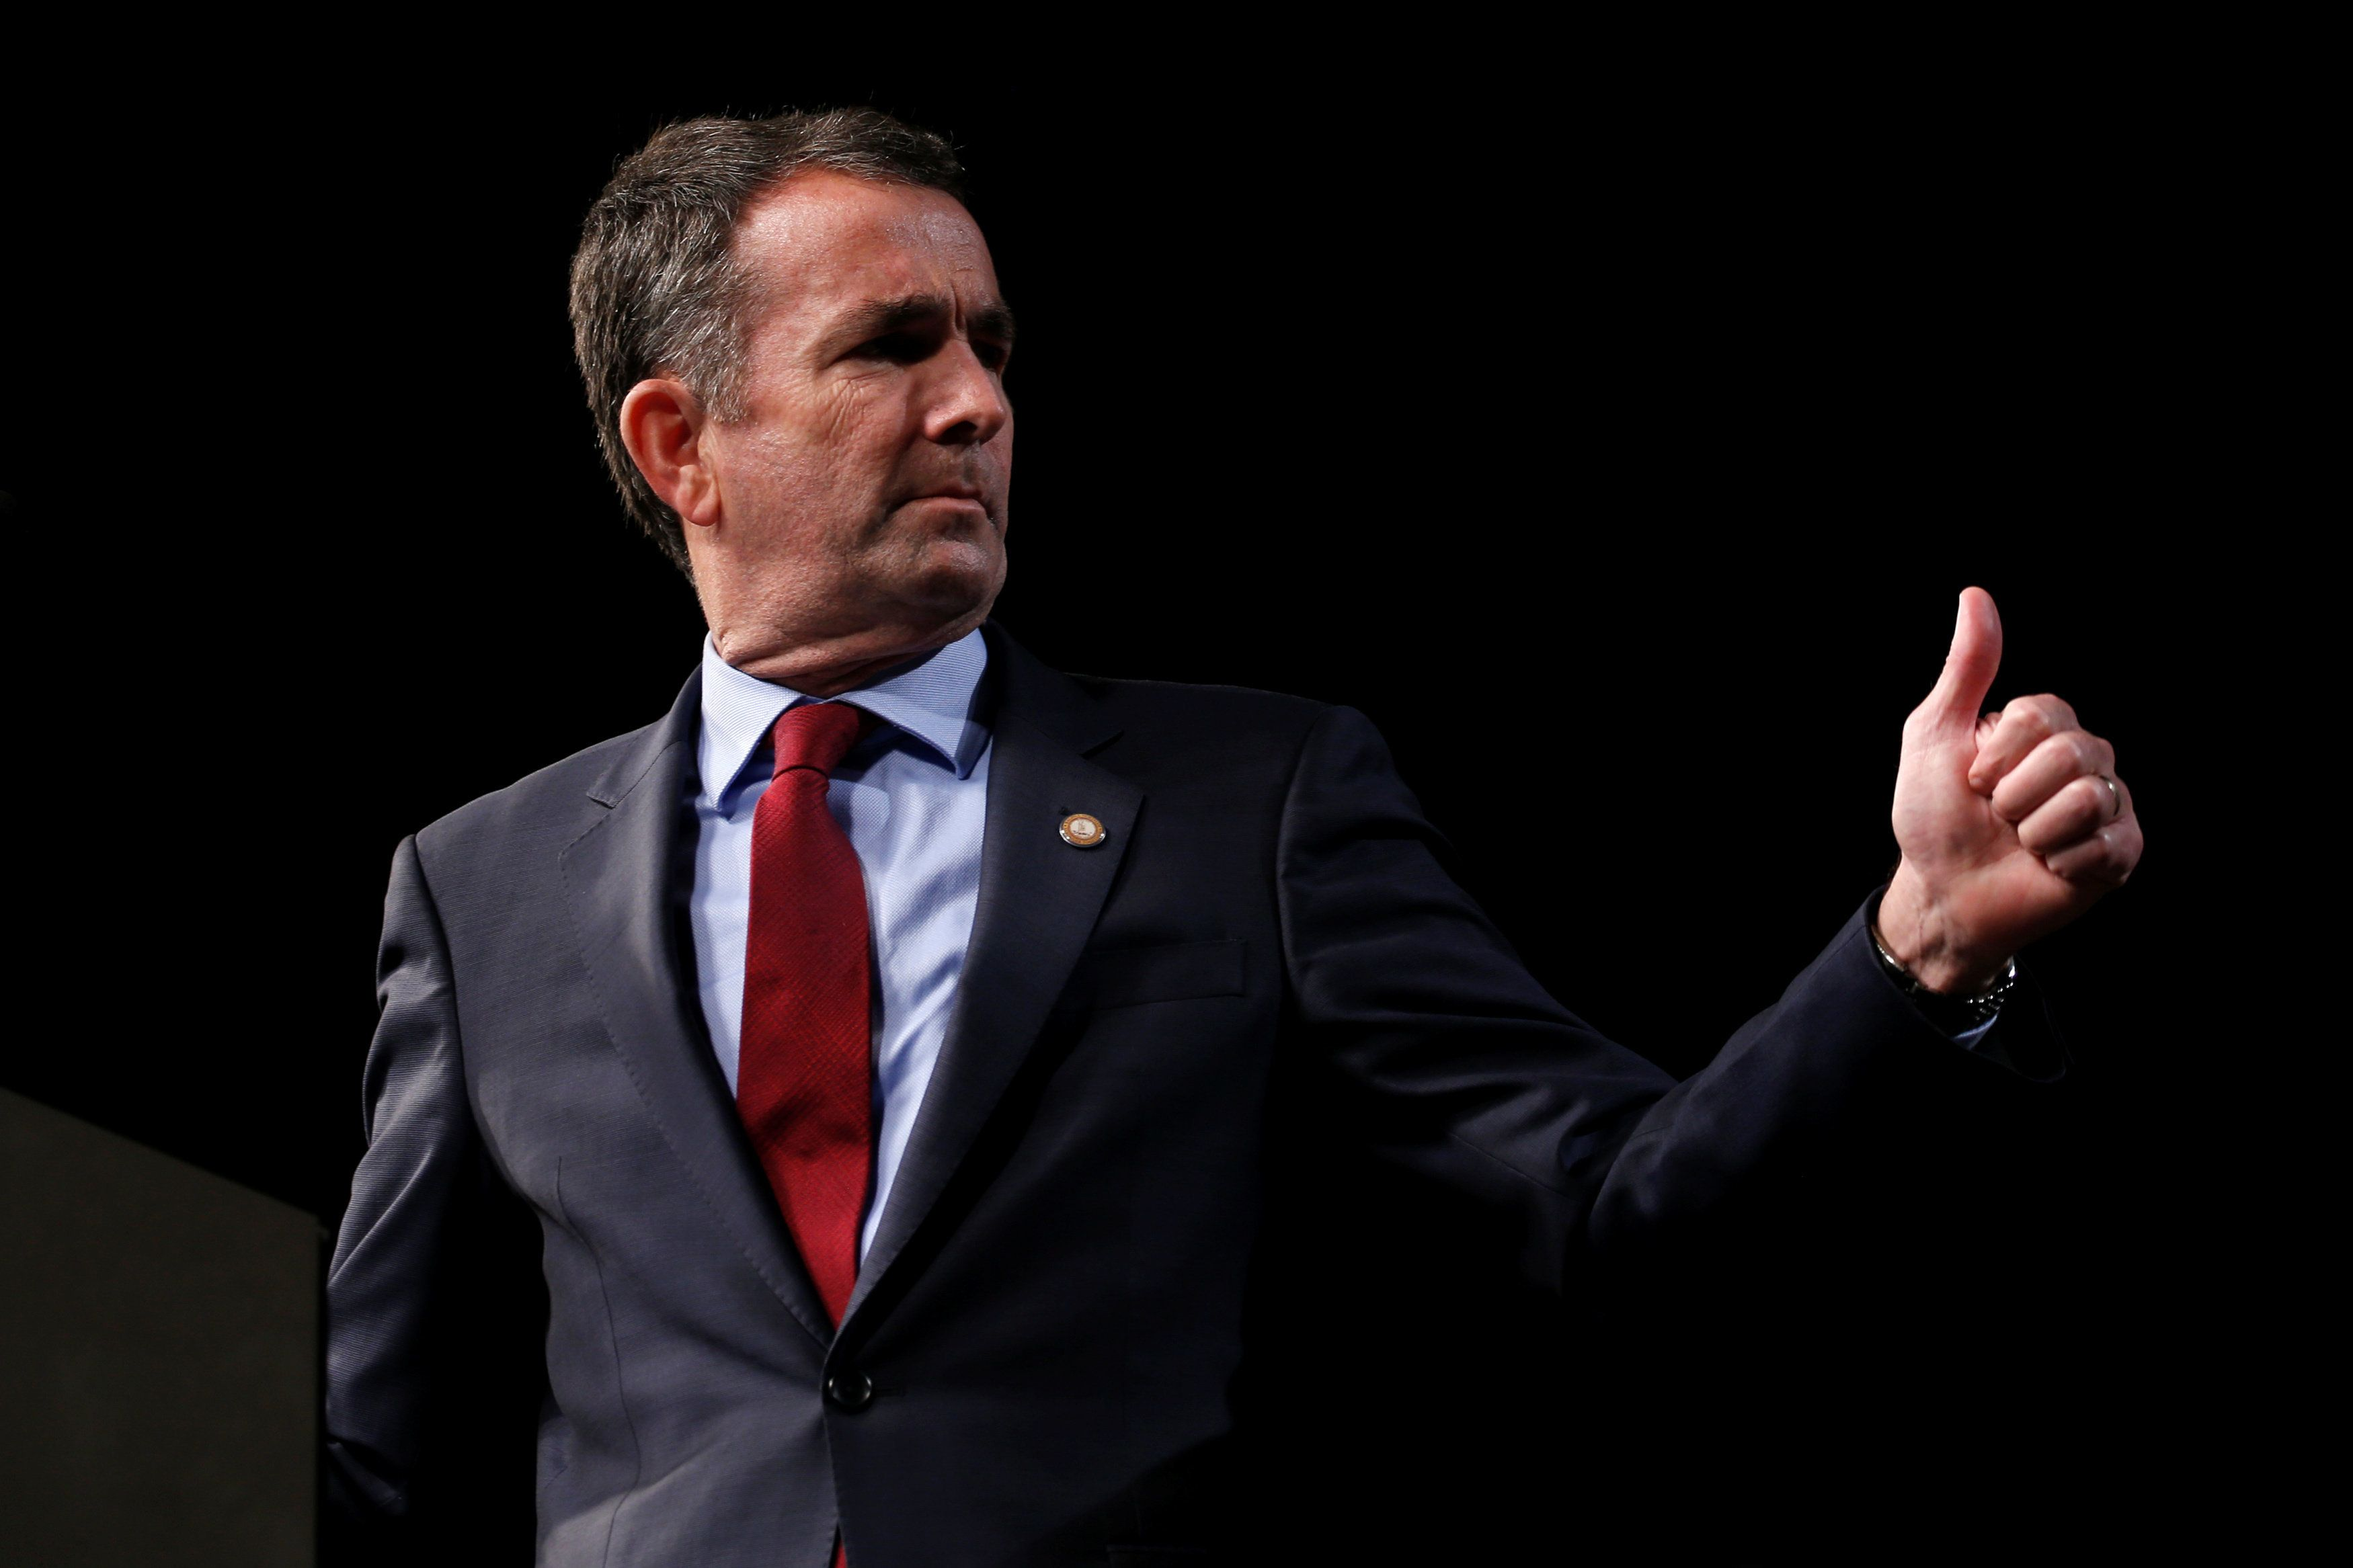 Virginia Lieutenant Governor Ralph Northam, Democratic candidate for governor, delivers remarks before introducing former U.S. President Barack Obama to speak at a rally with supporters in Richmond, Virginia, U.S. October 19, 2017.  REUTERS/Jonathan Ernst